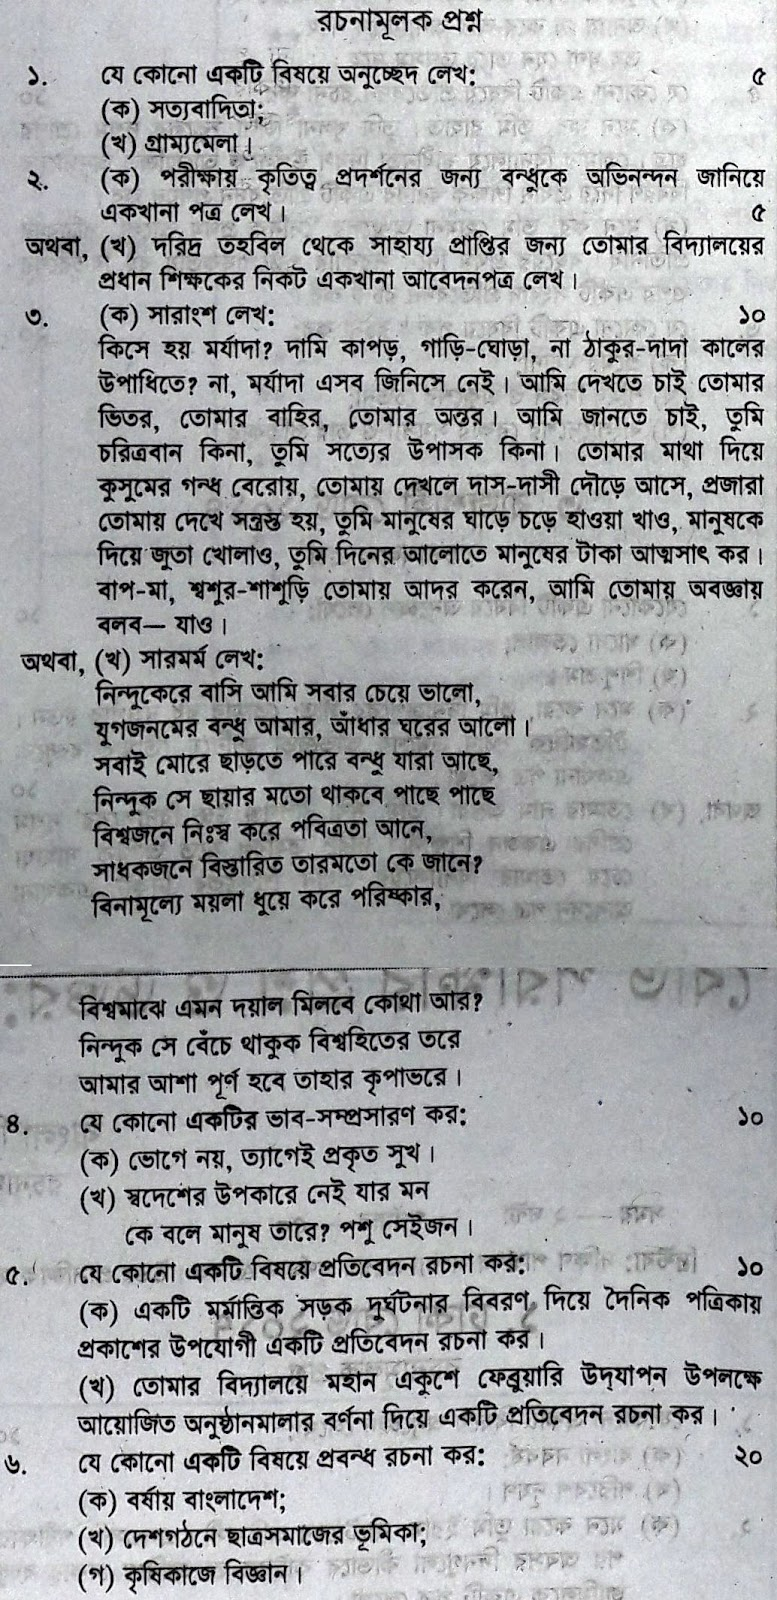 SSC Bangla 2nd Paper Model Question - 04